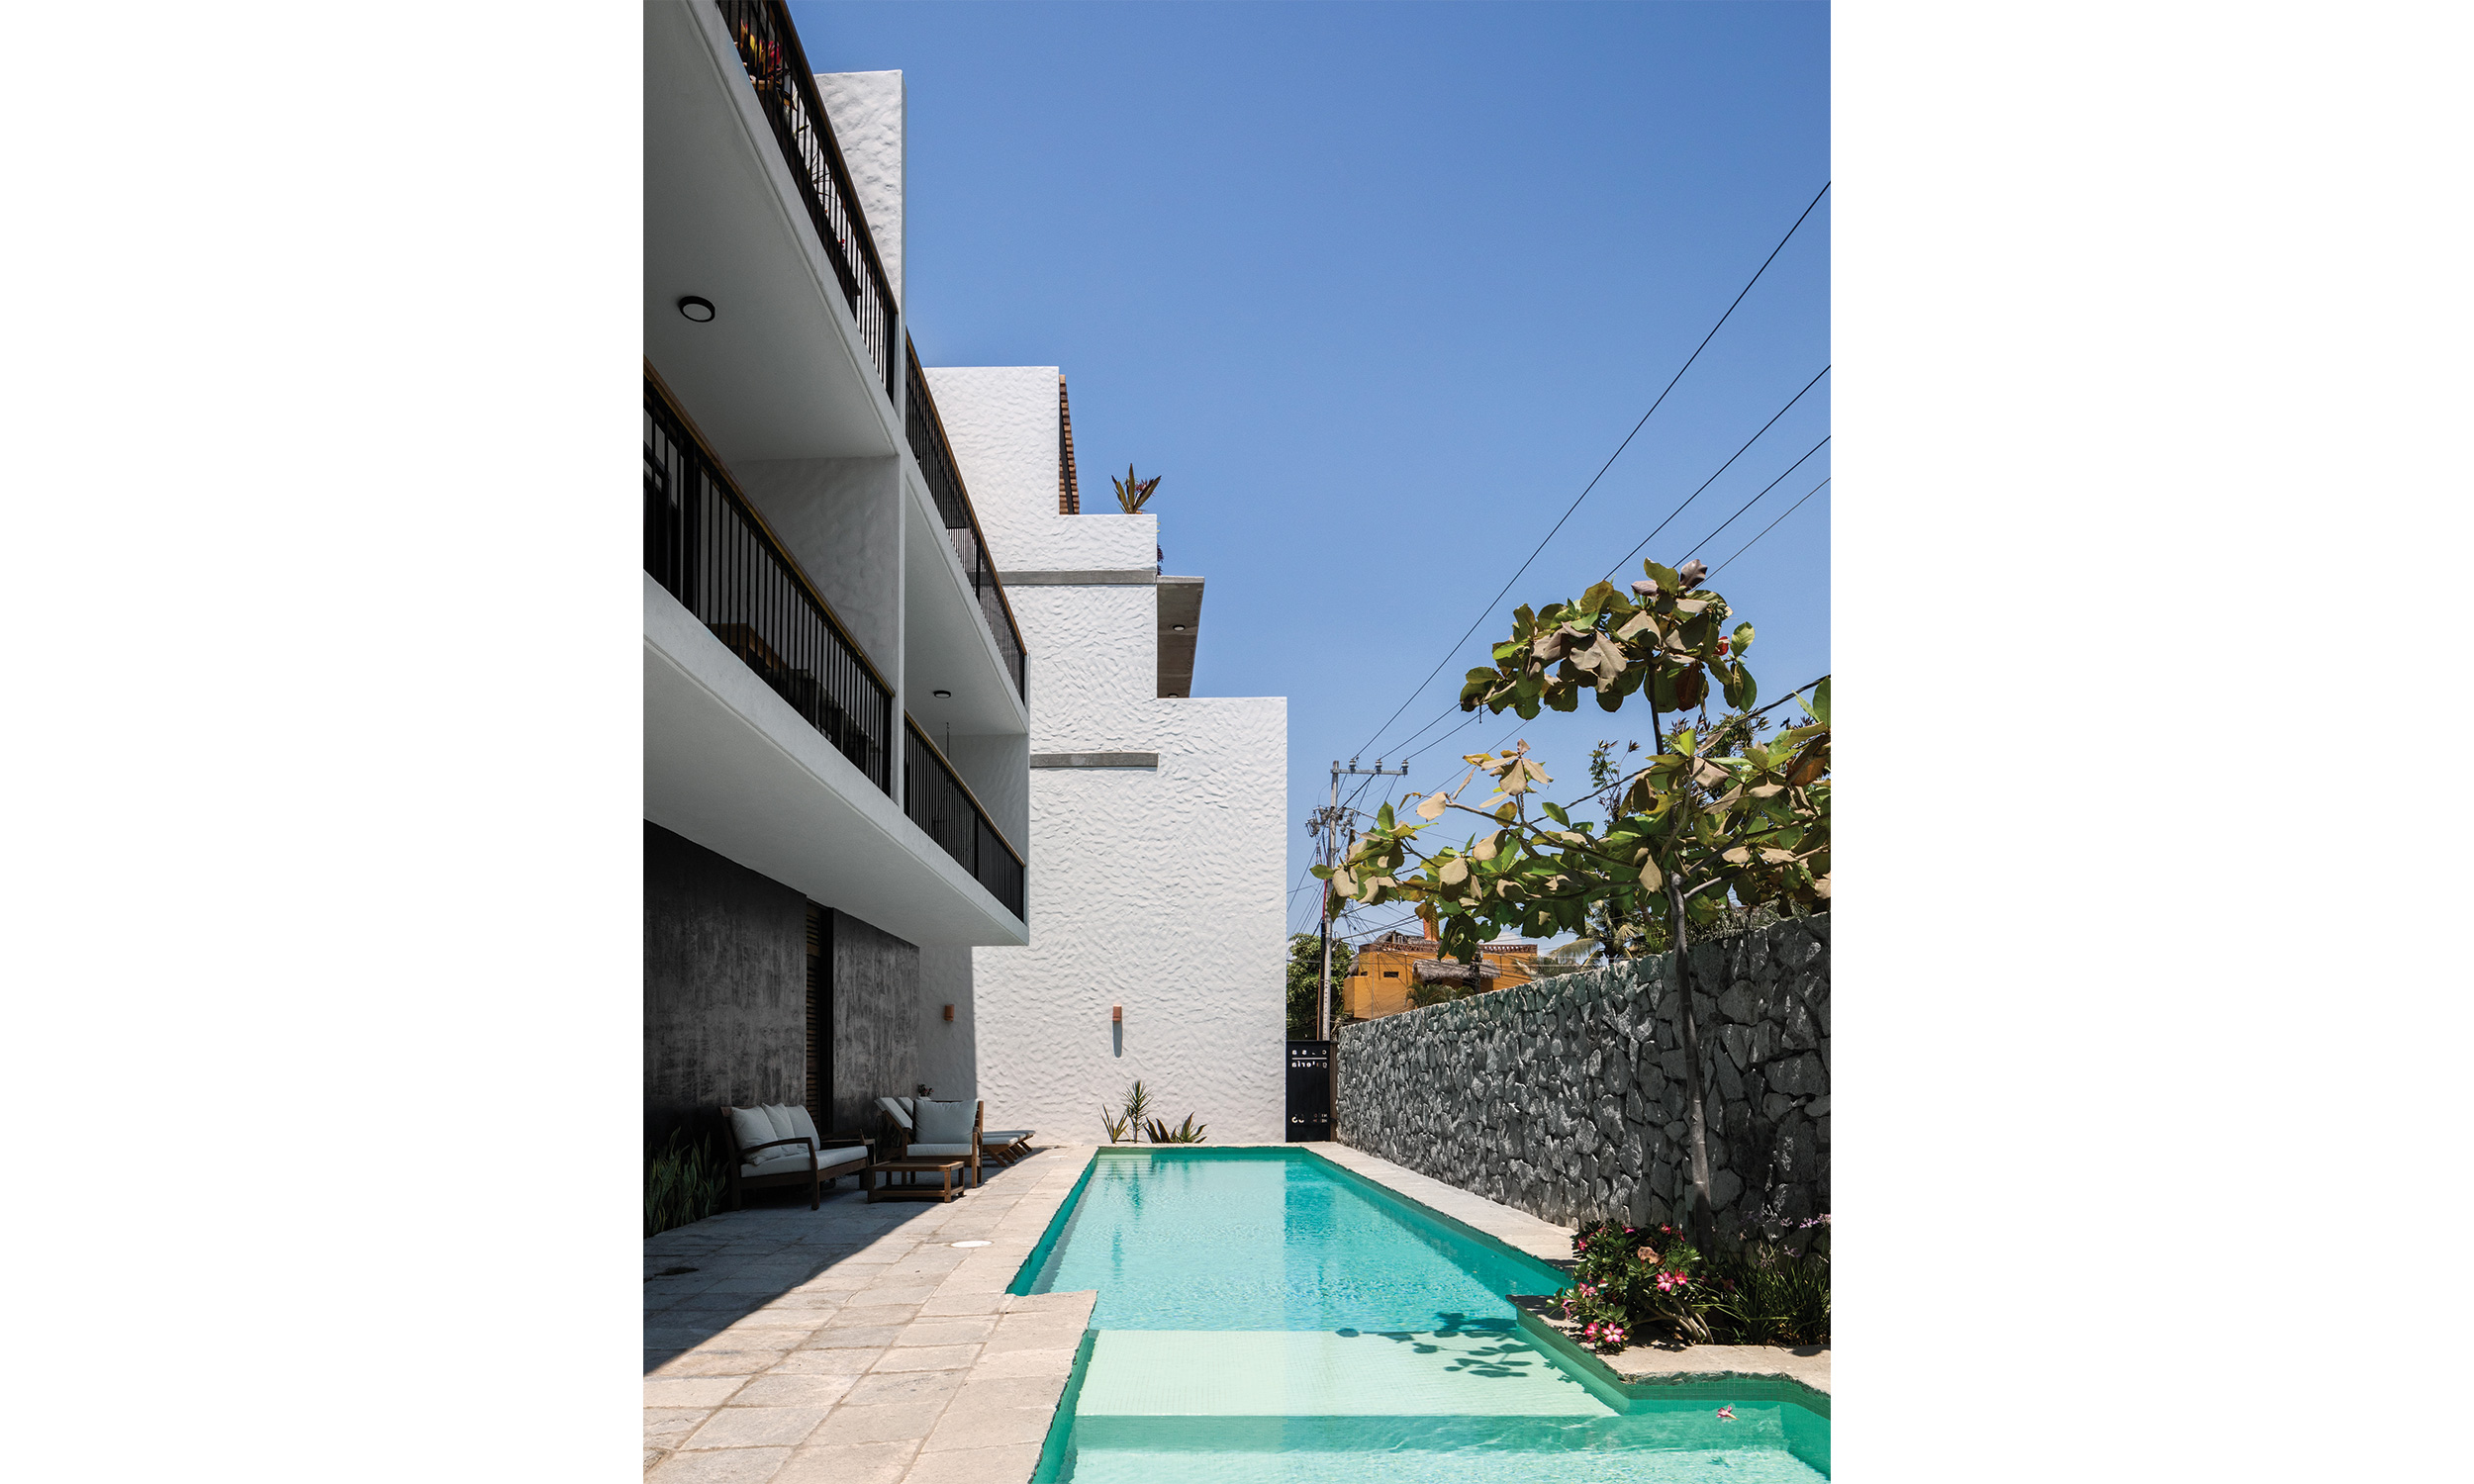 main_office_casa_galería_rafaél_gamo_1248_pool